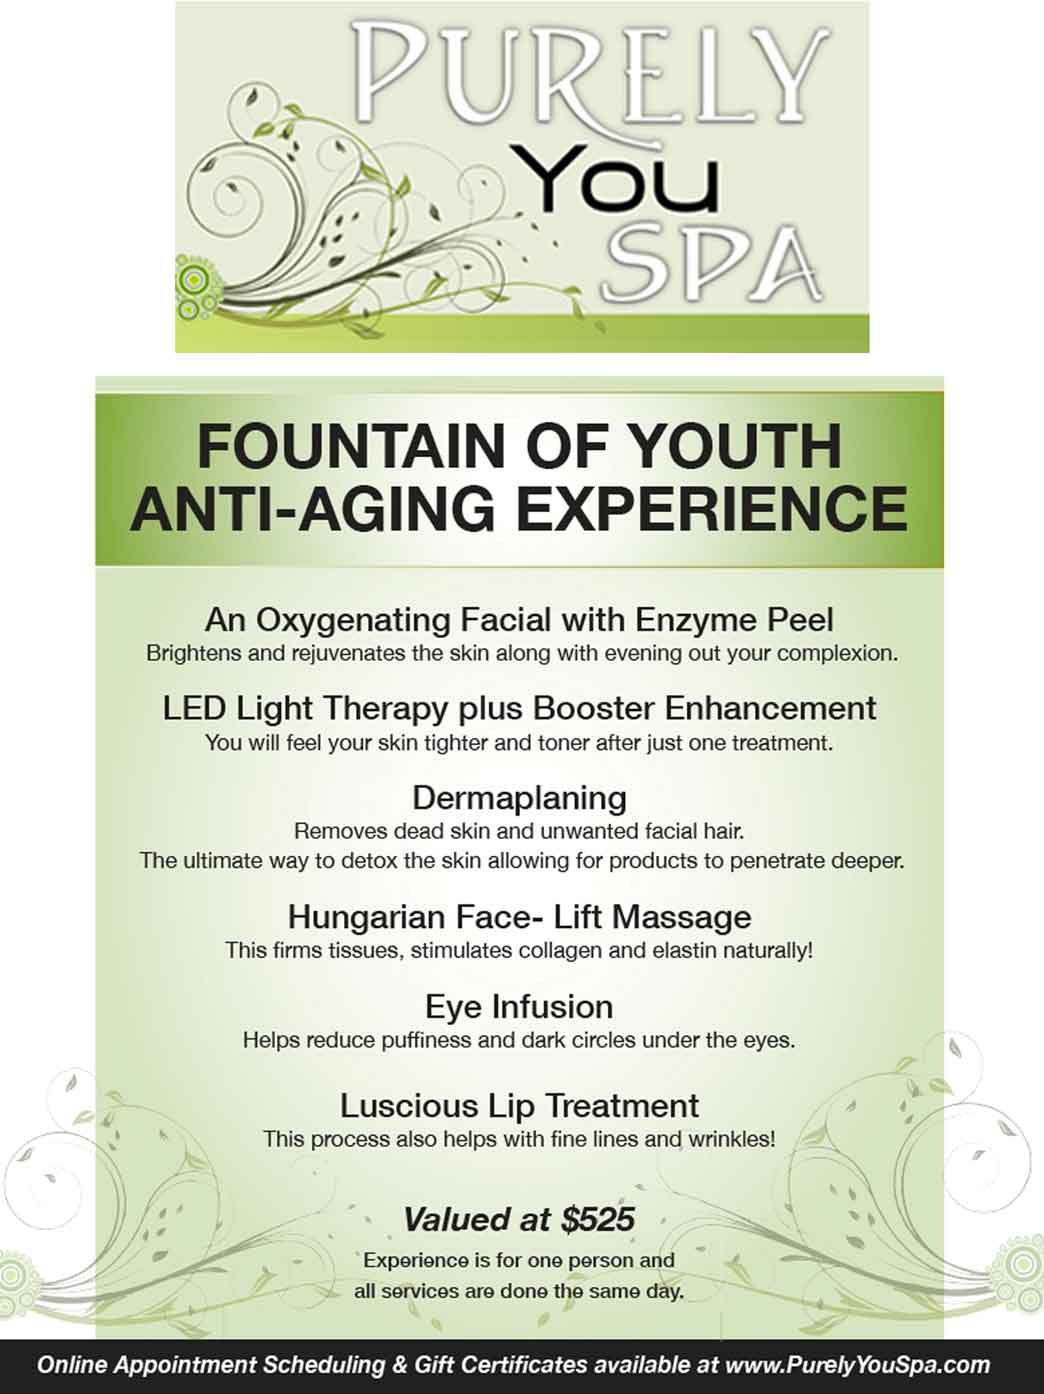 Fountain of Youth Anti-Aging Experience flyer | Purely You Spa Naples, Florida